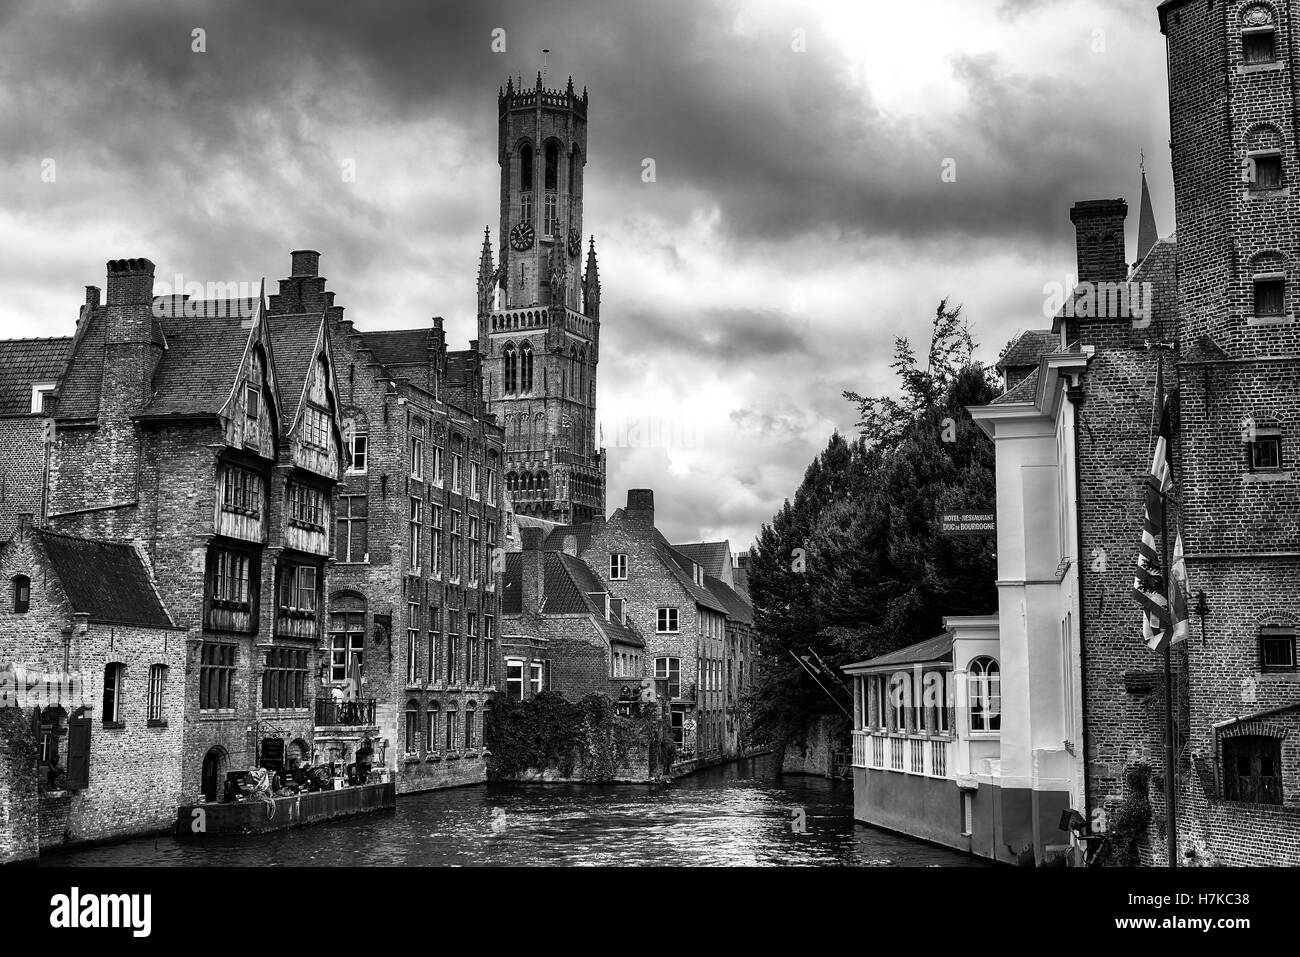 View from the Rozenhoedkaai in Brugge with the Perez de Malvenda house and Belfort van Brugge in the background - Stock Image